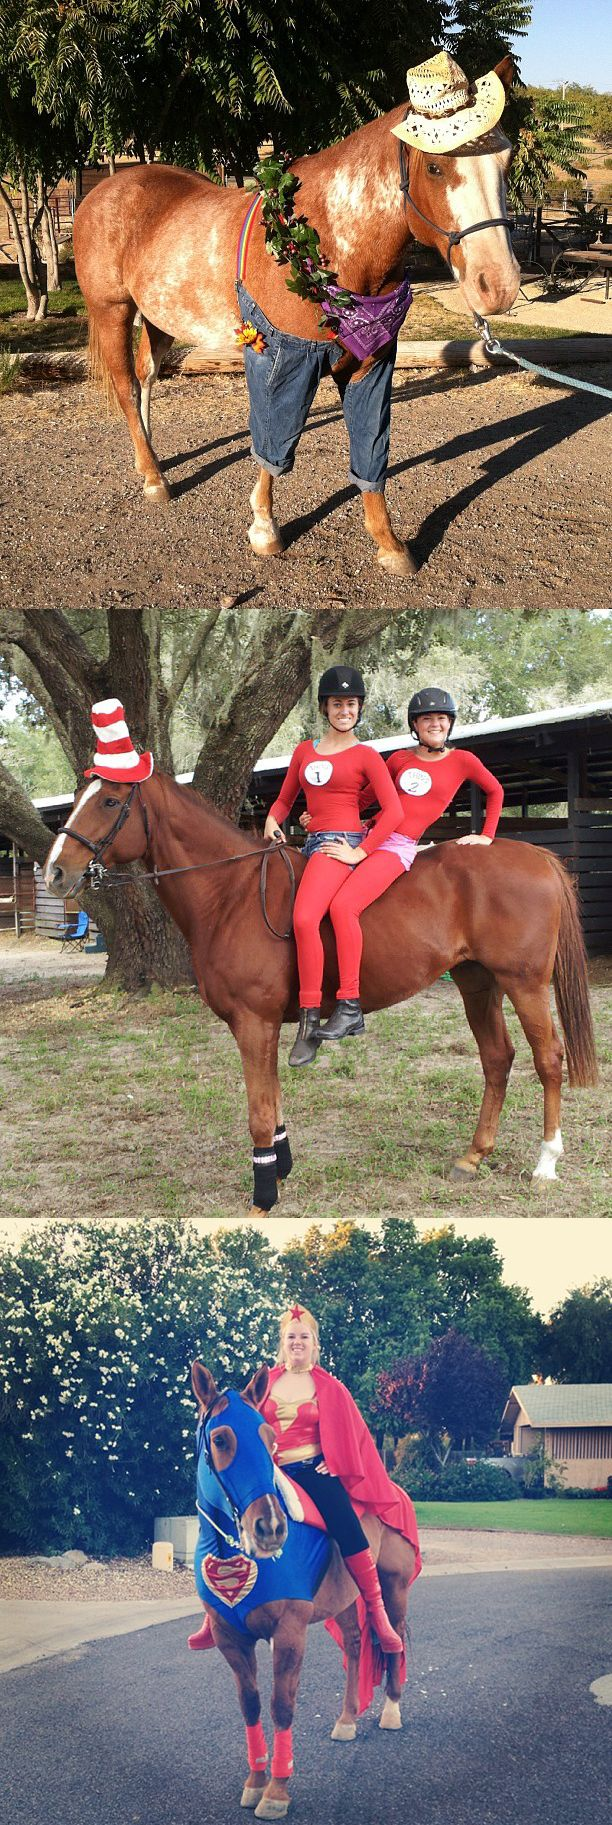 Halloween might be these horses least favorite holiday.